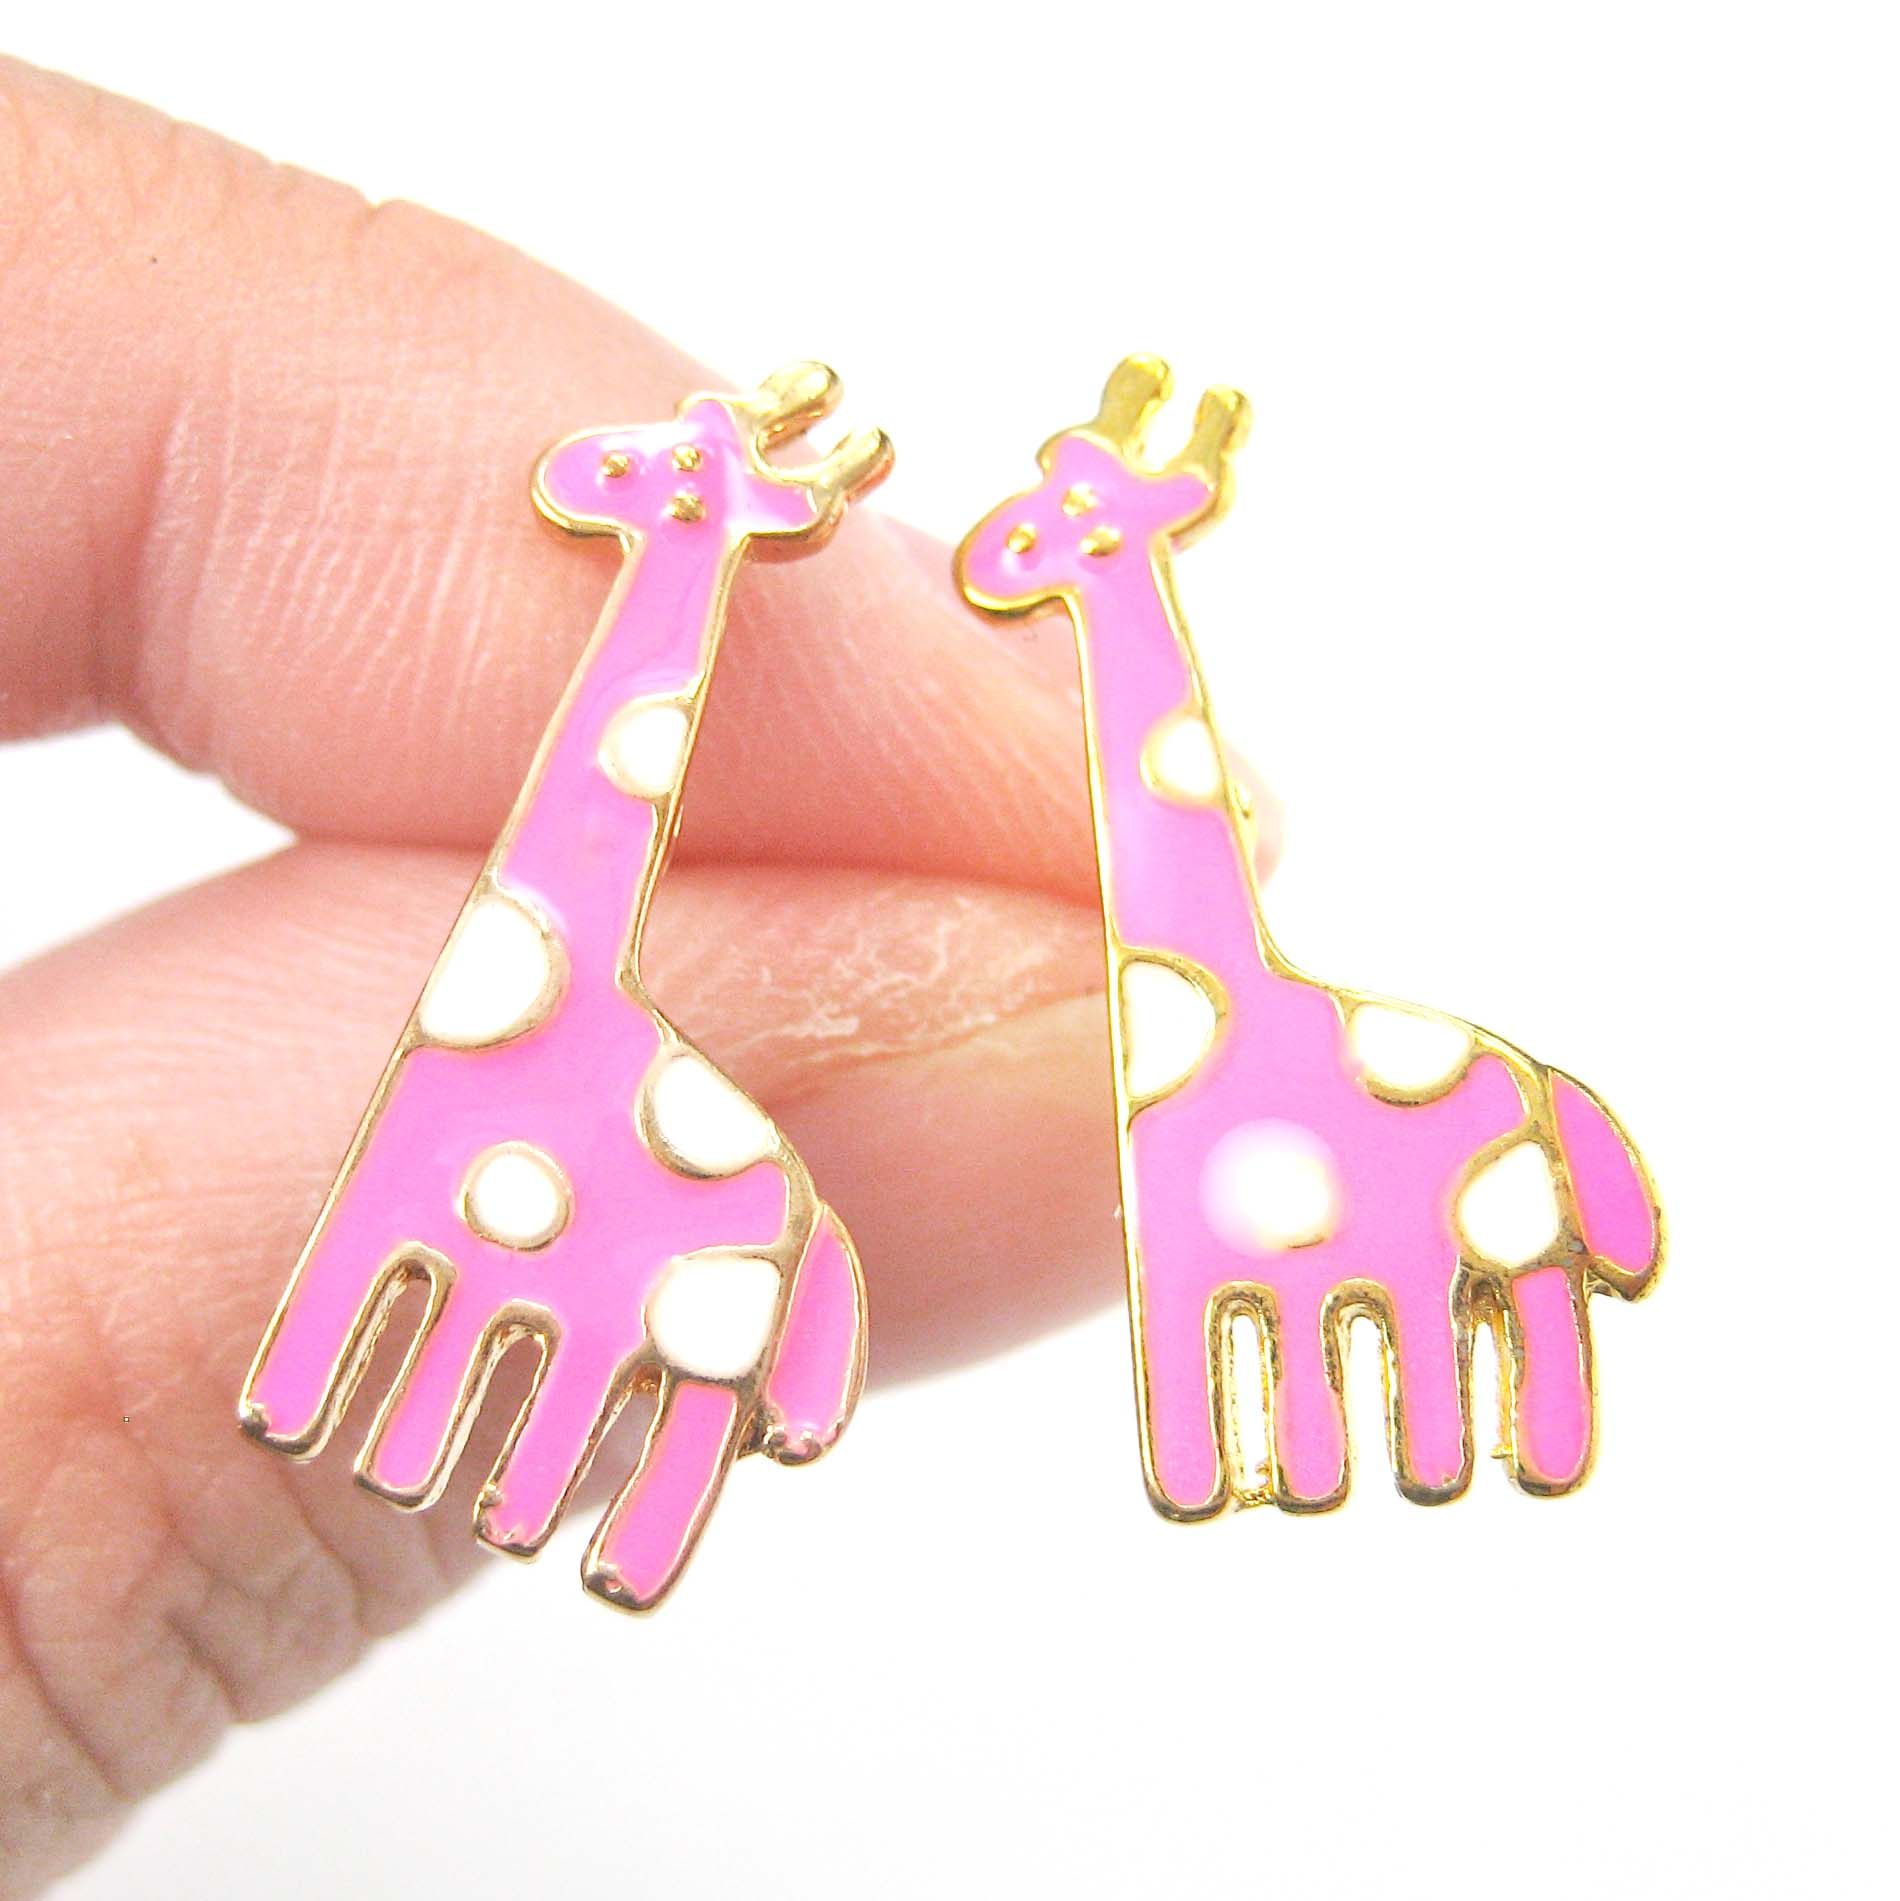 7abe13692e23 Large Polka Dotted Giraffe Animal Stud Earrings in Pink and White ...